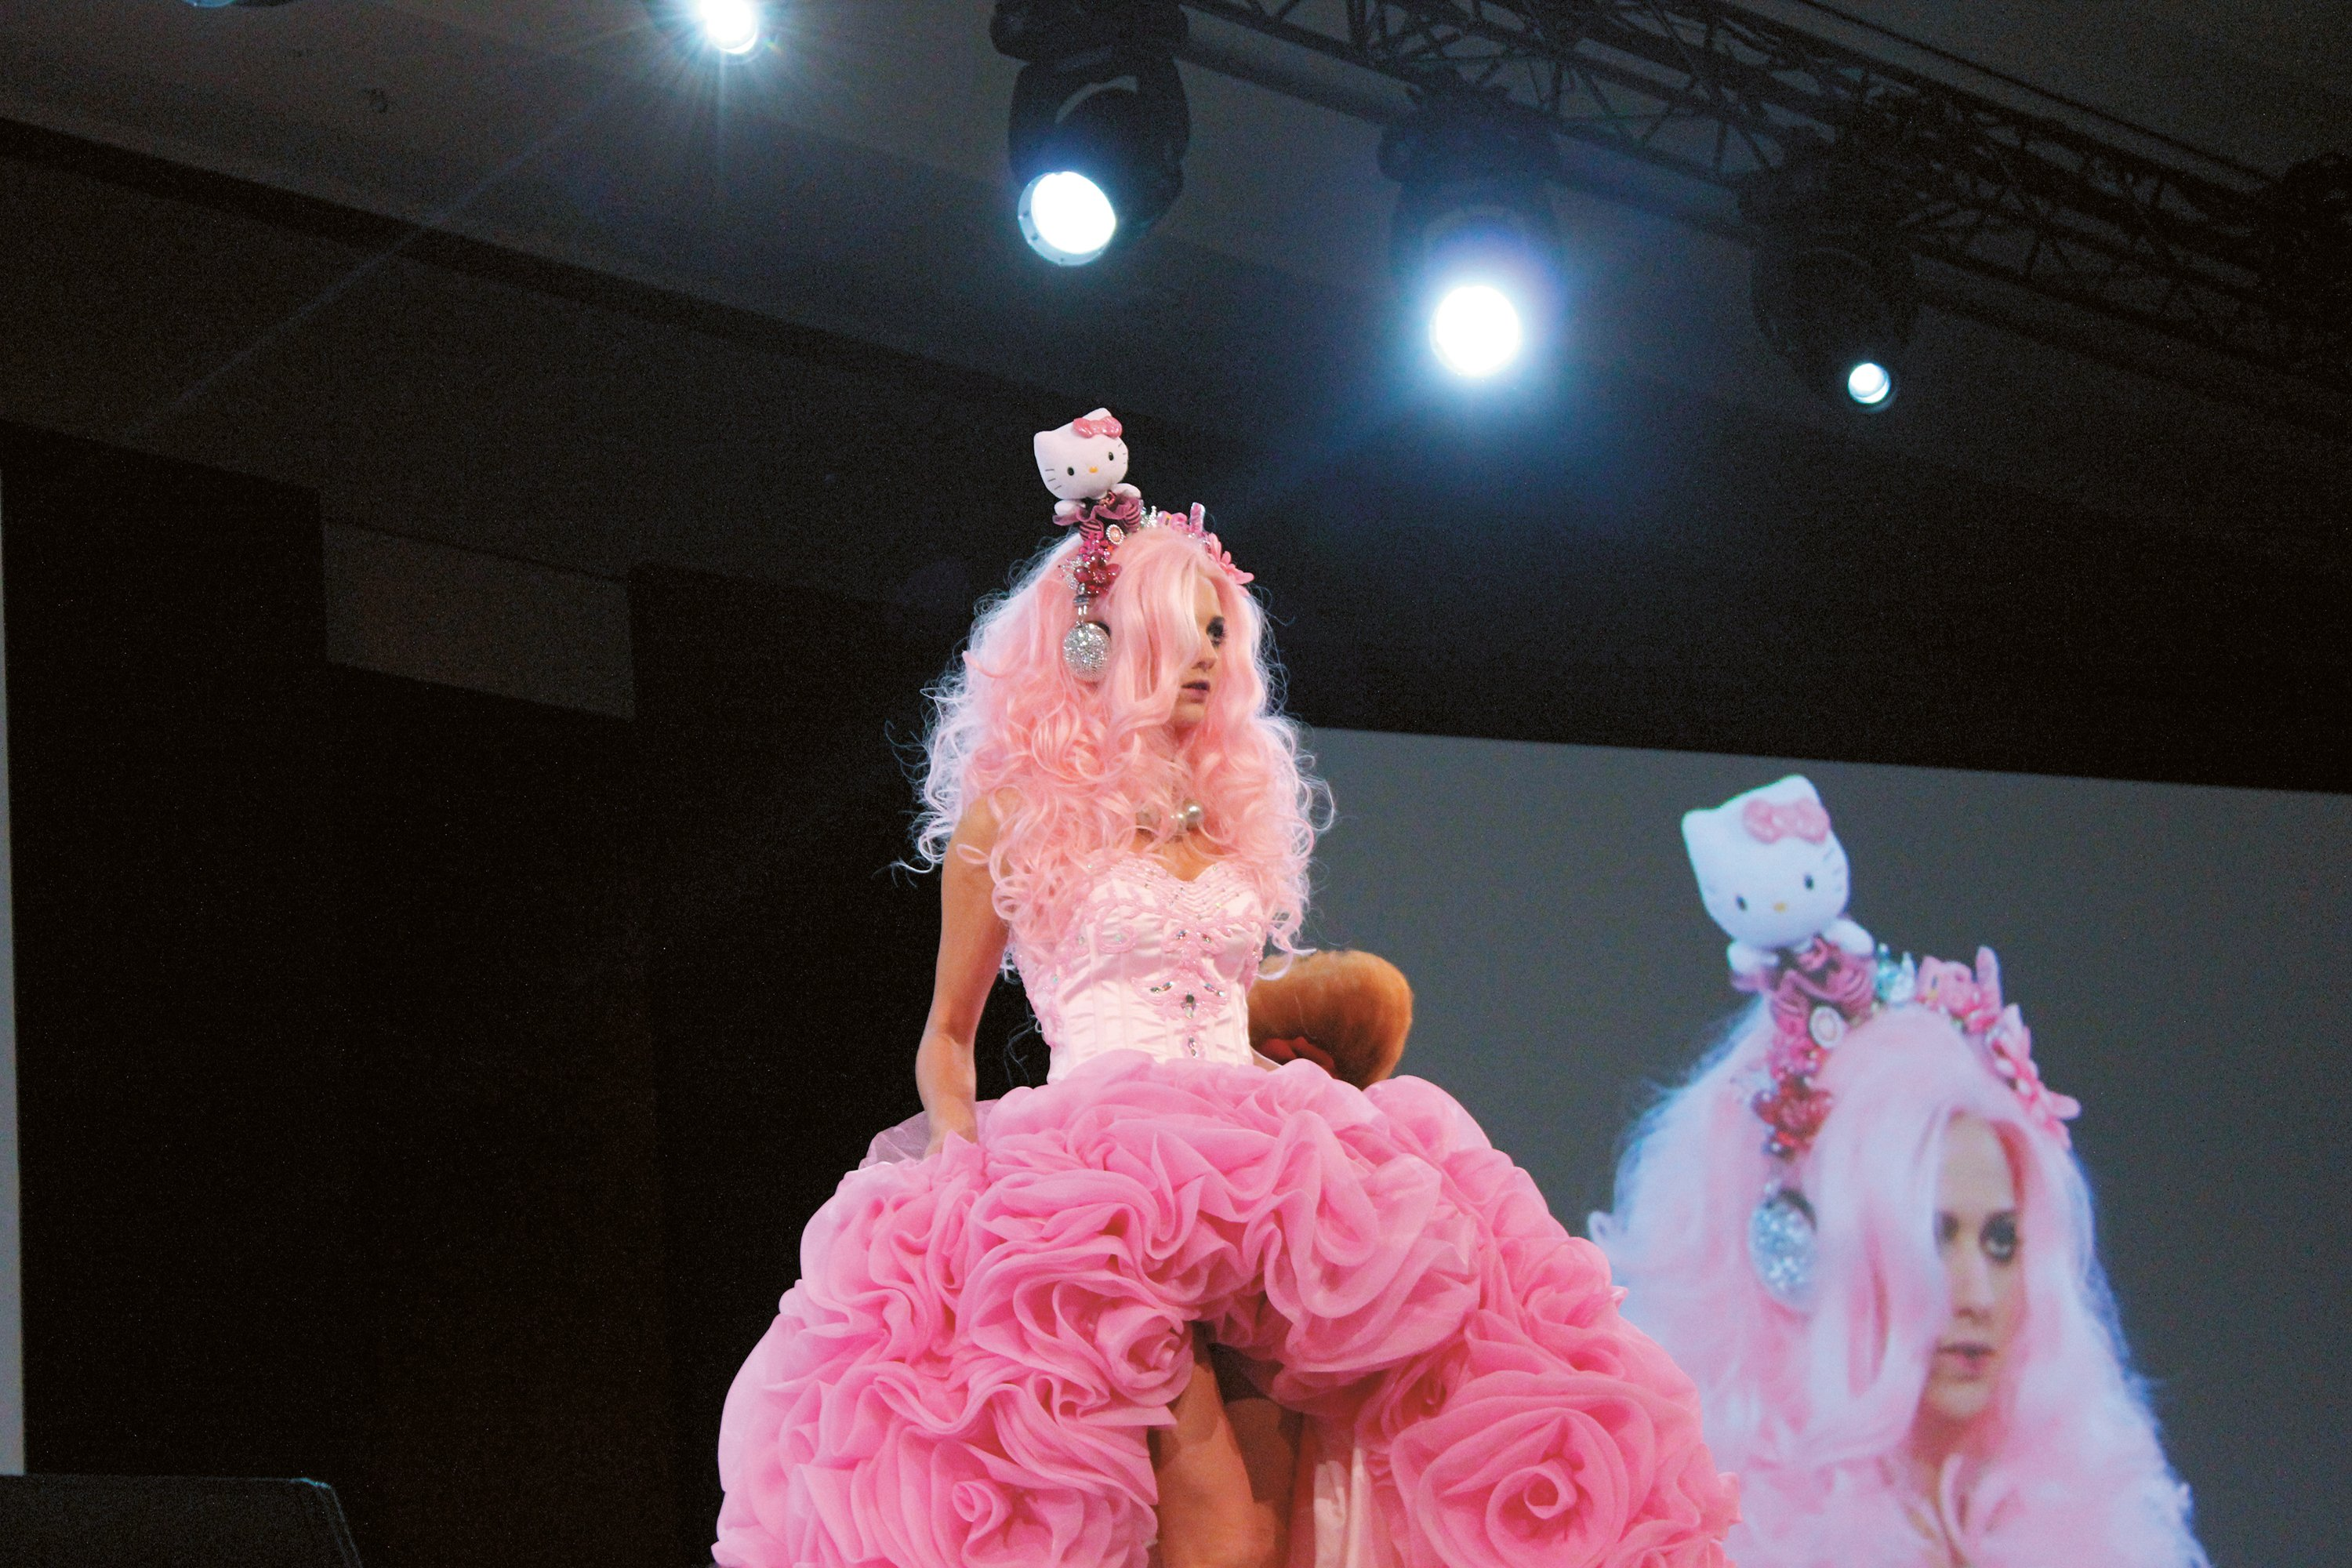 Tabatha Coffey, who suggested letting your imagination run wild to get unstuck, offered this take on Hello Kitty.